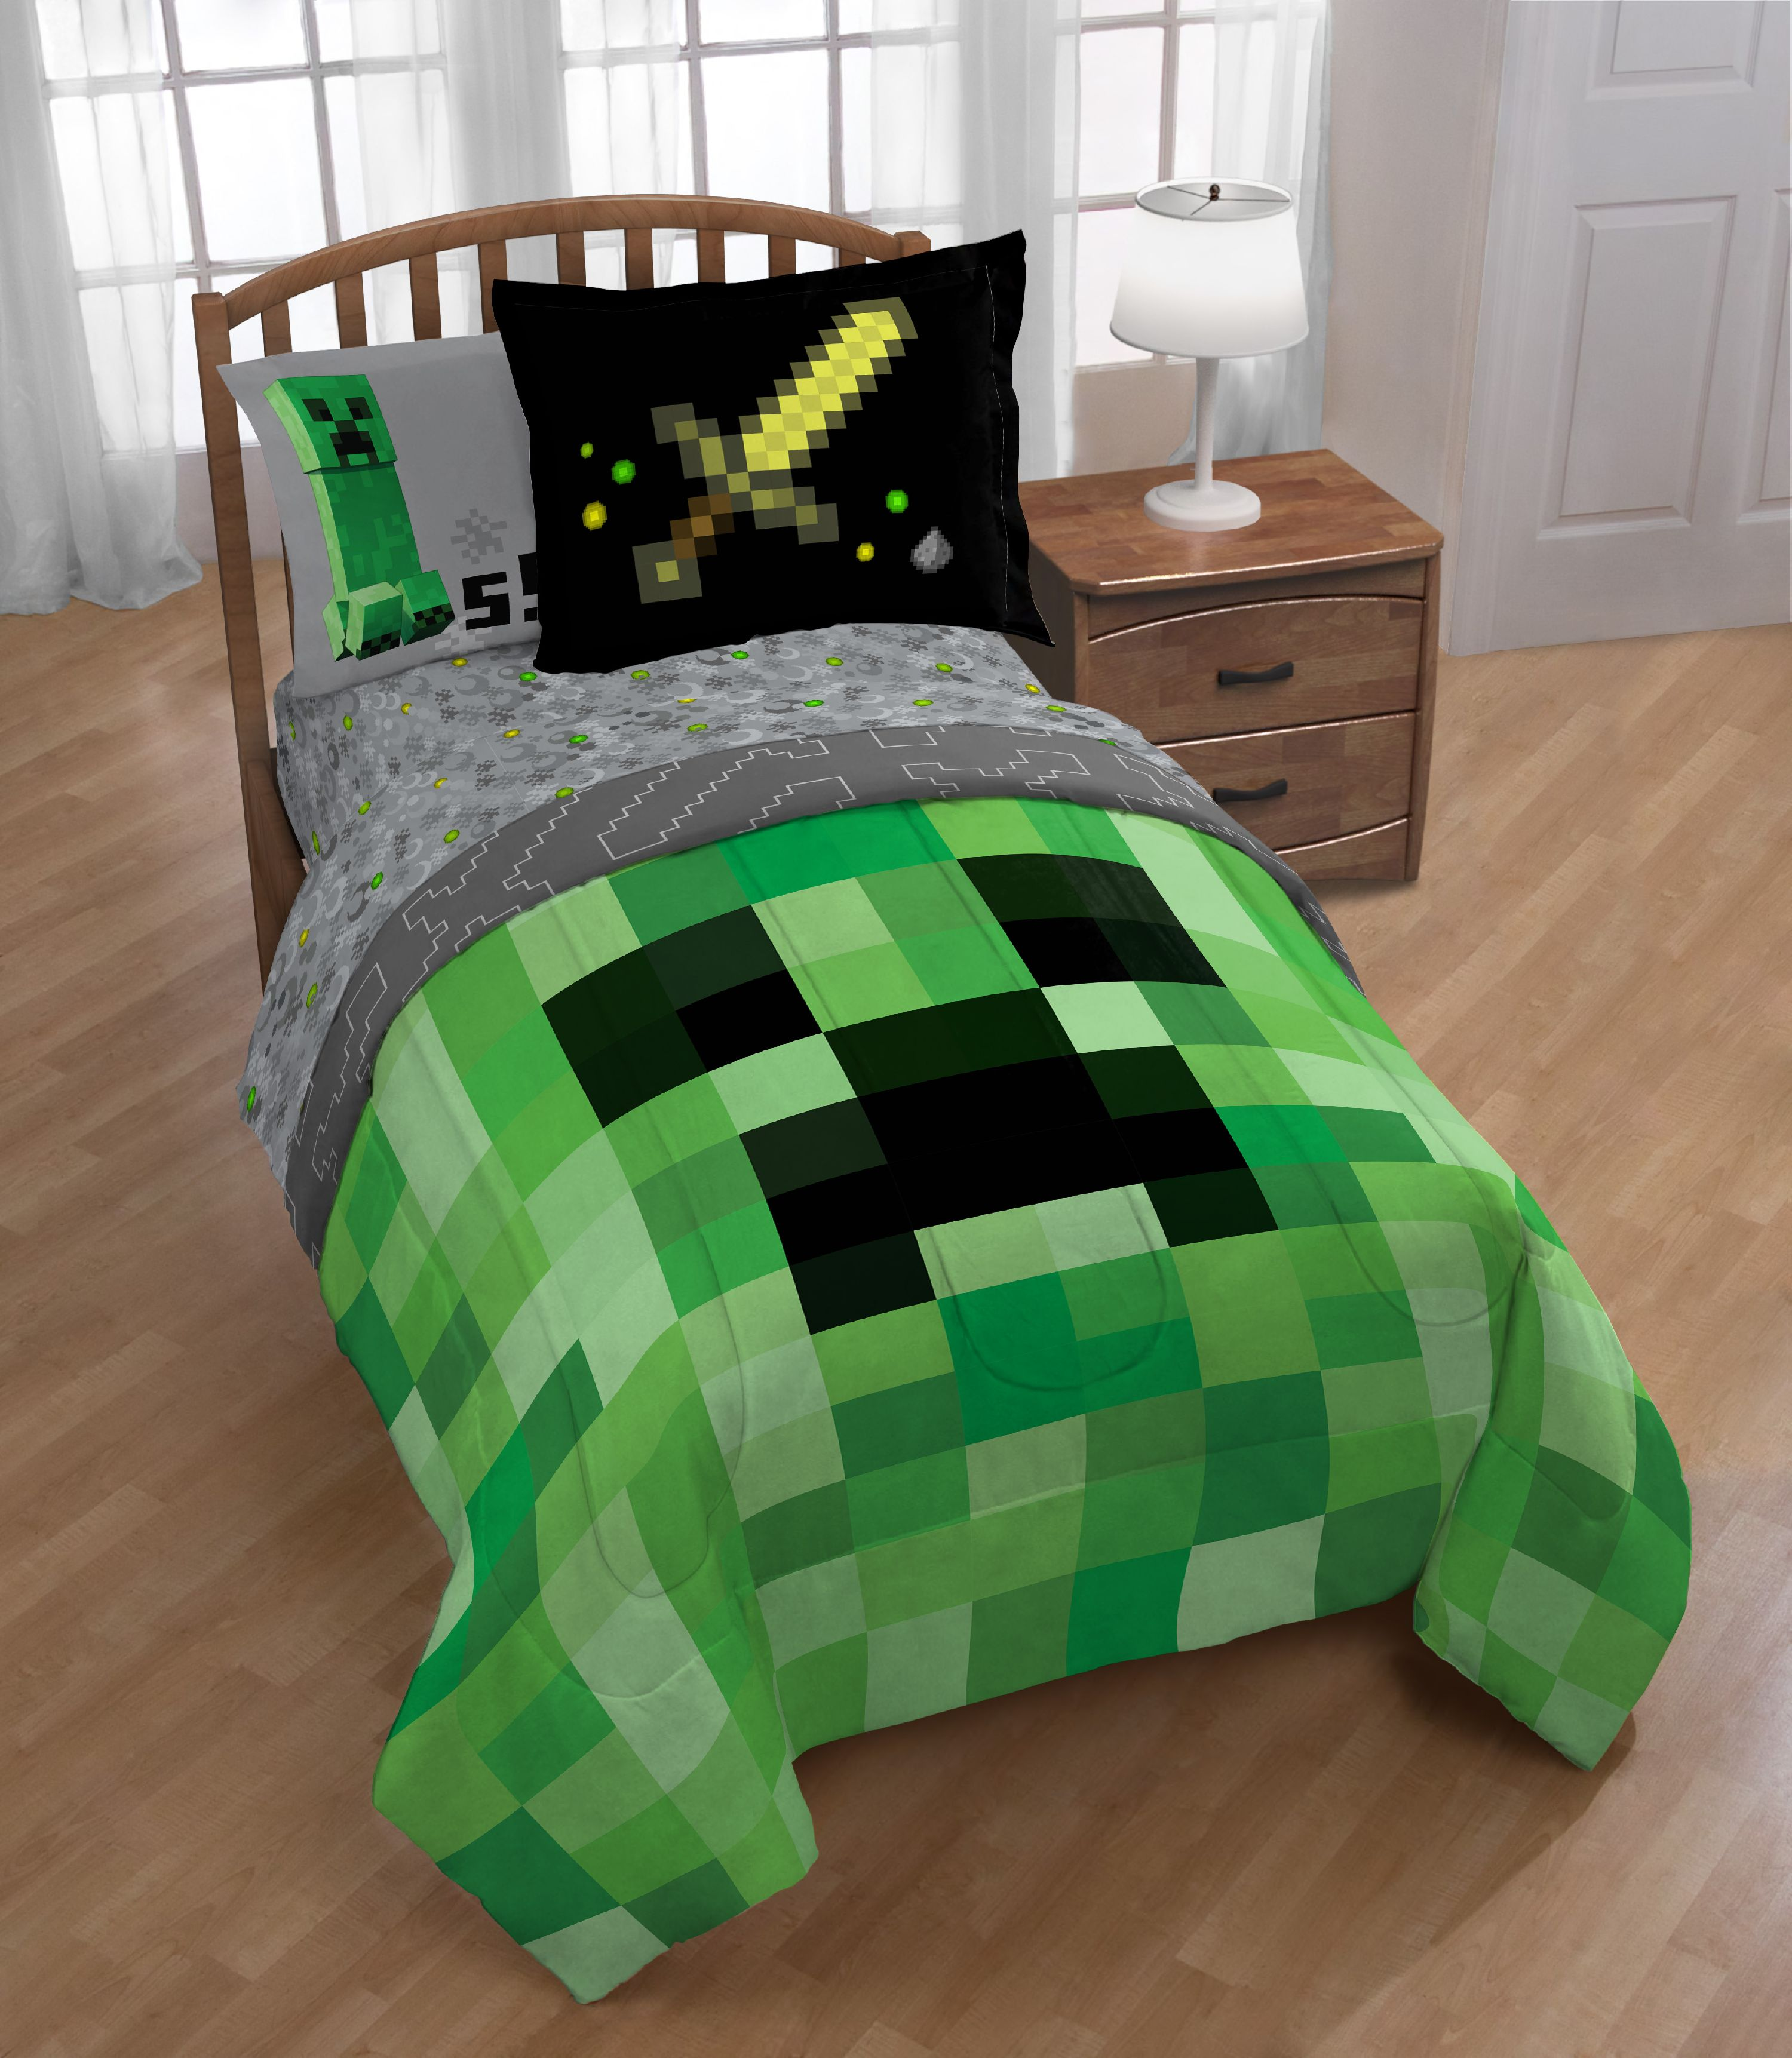 Minecraft 5 piece Twin Bed Set, Kid's Bedding by Jay Franco